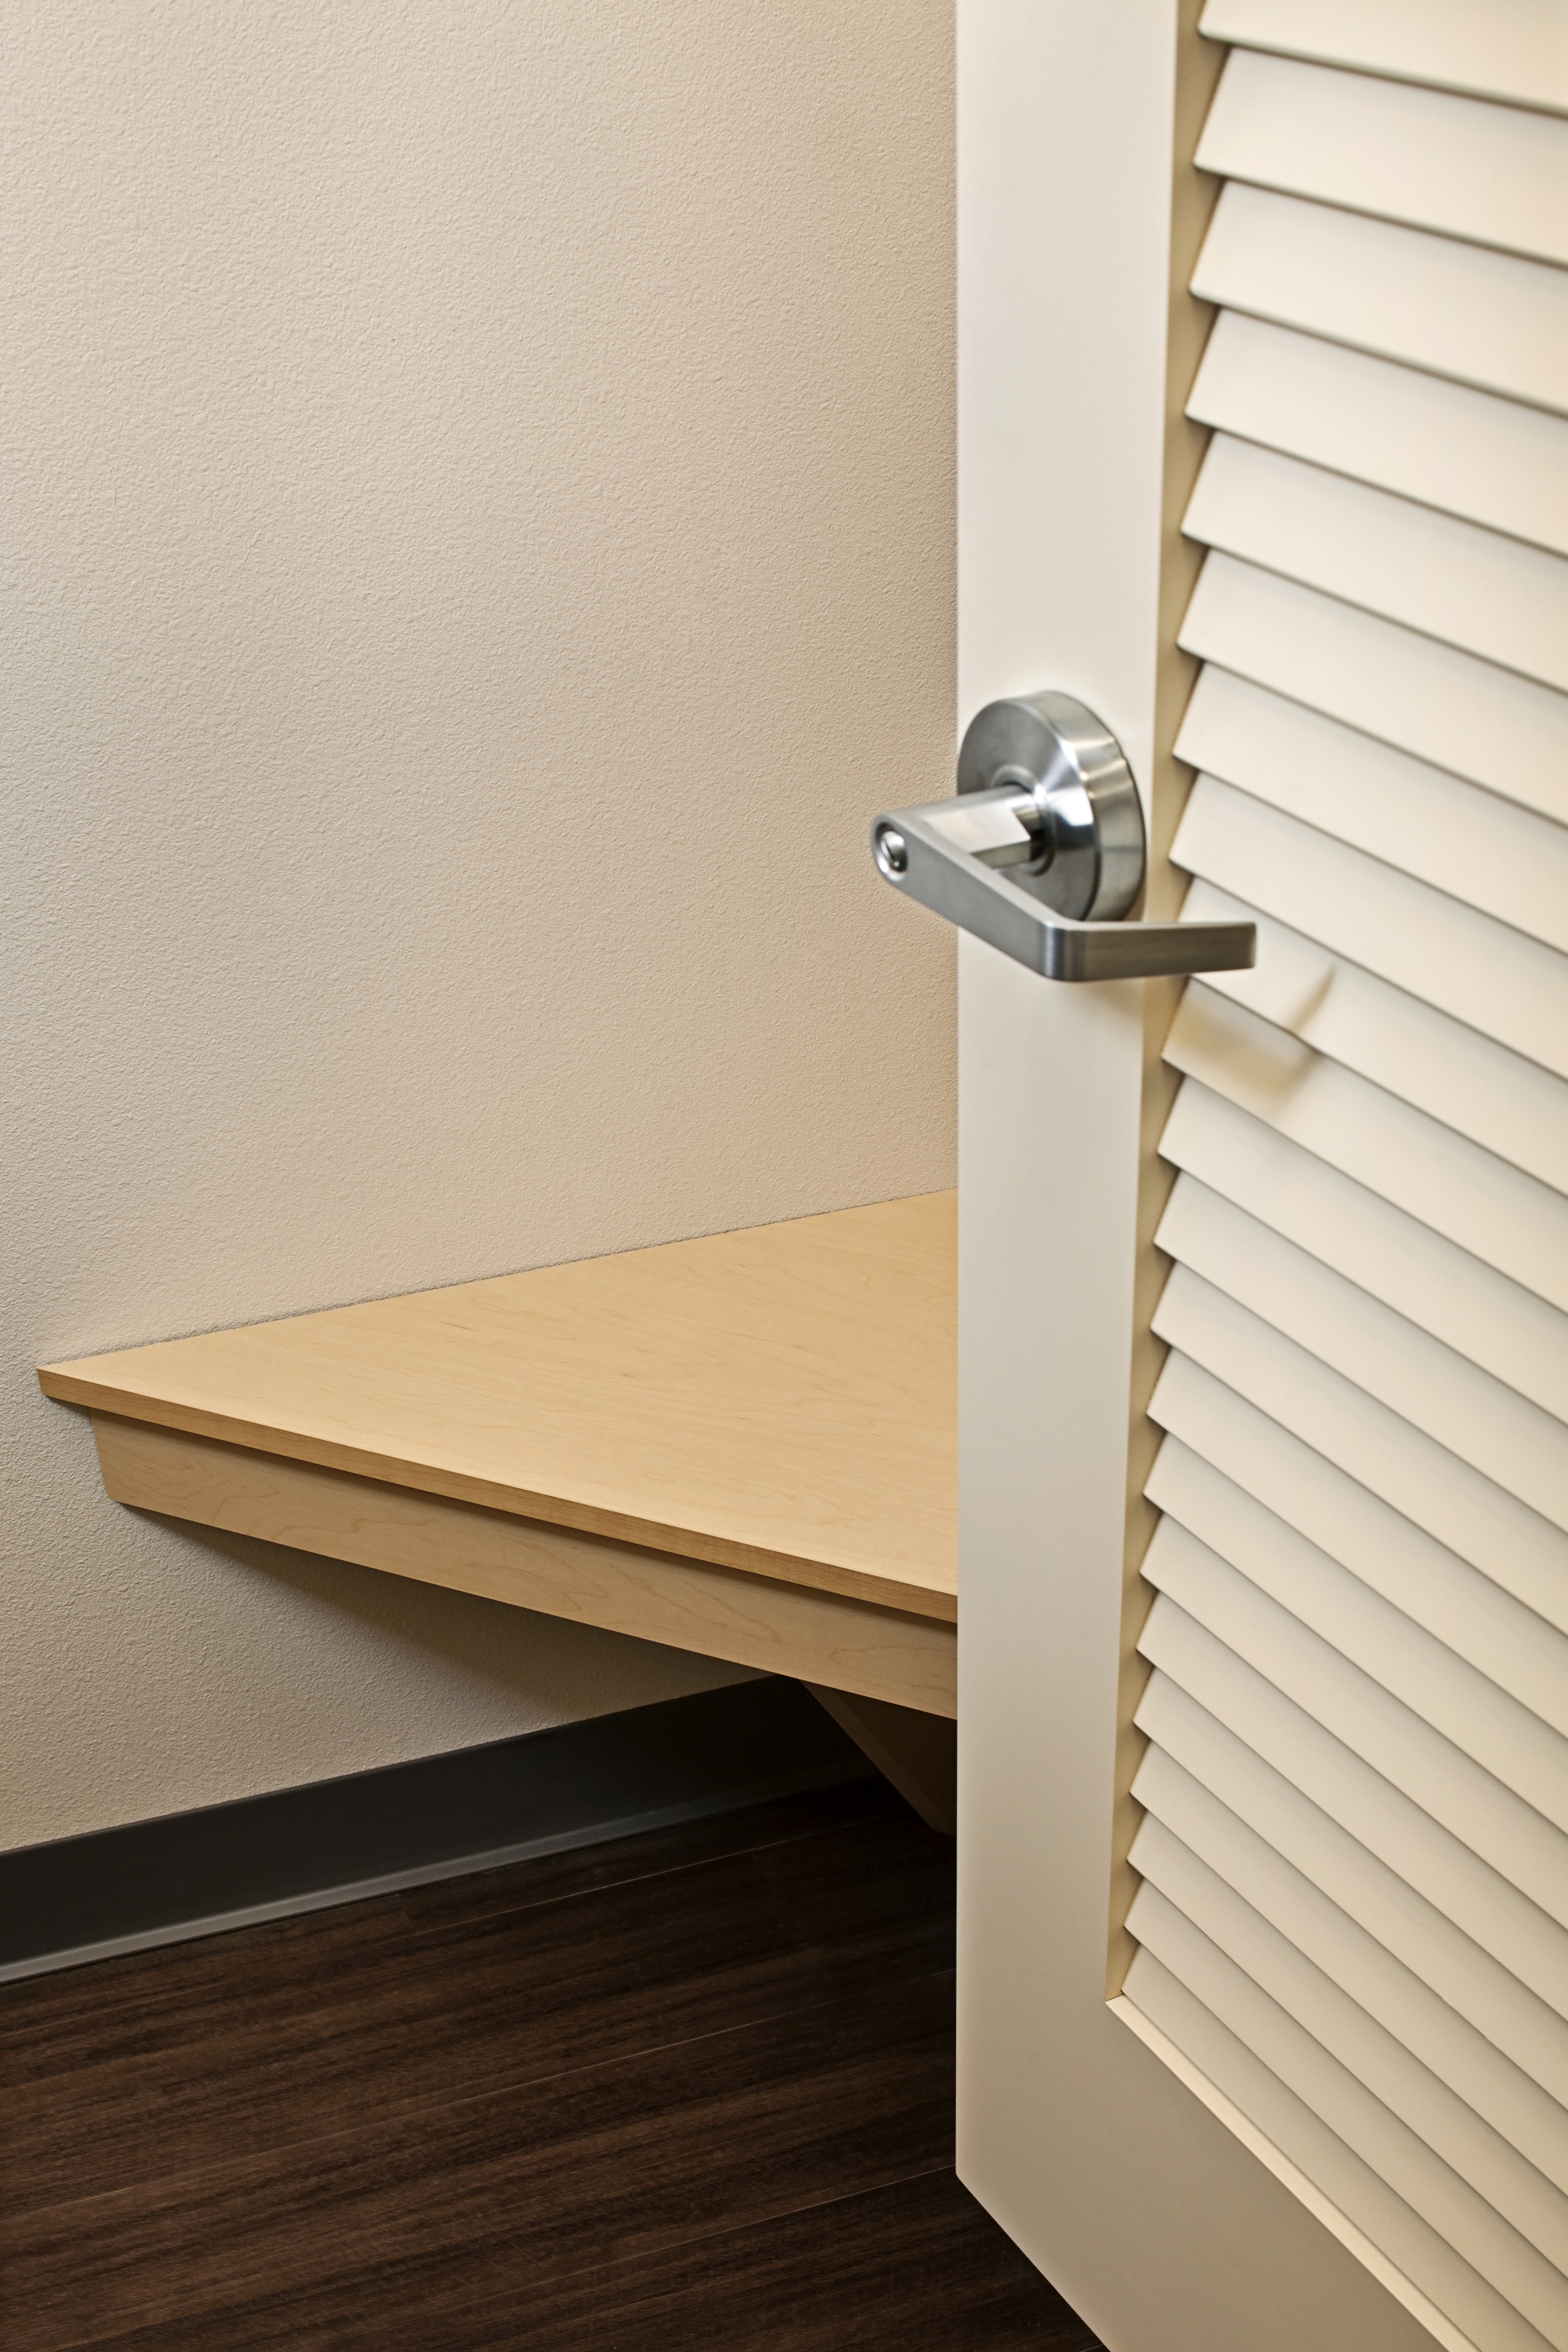 Burlington Fitting Rooms Bench Image 2_low res.jpg